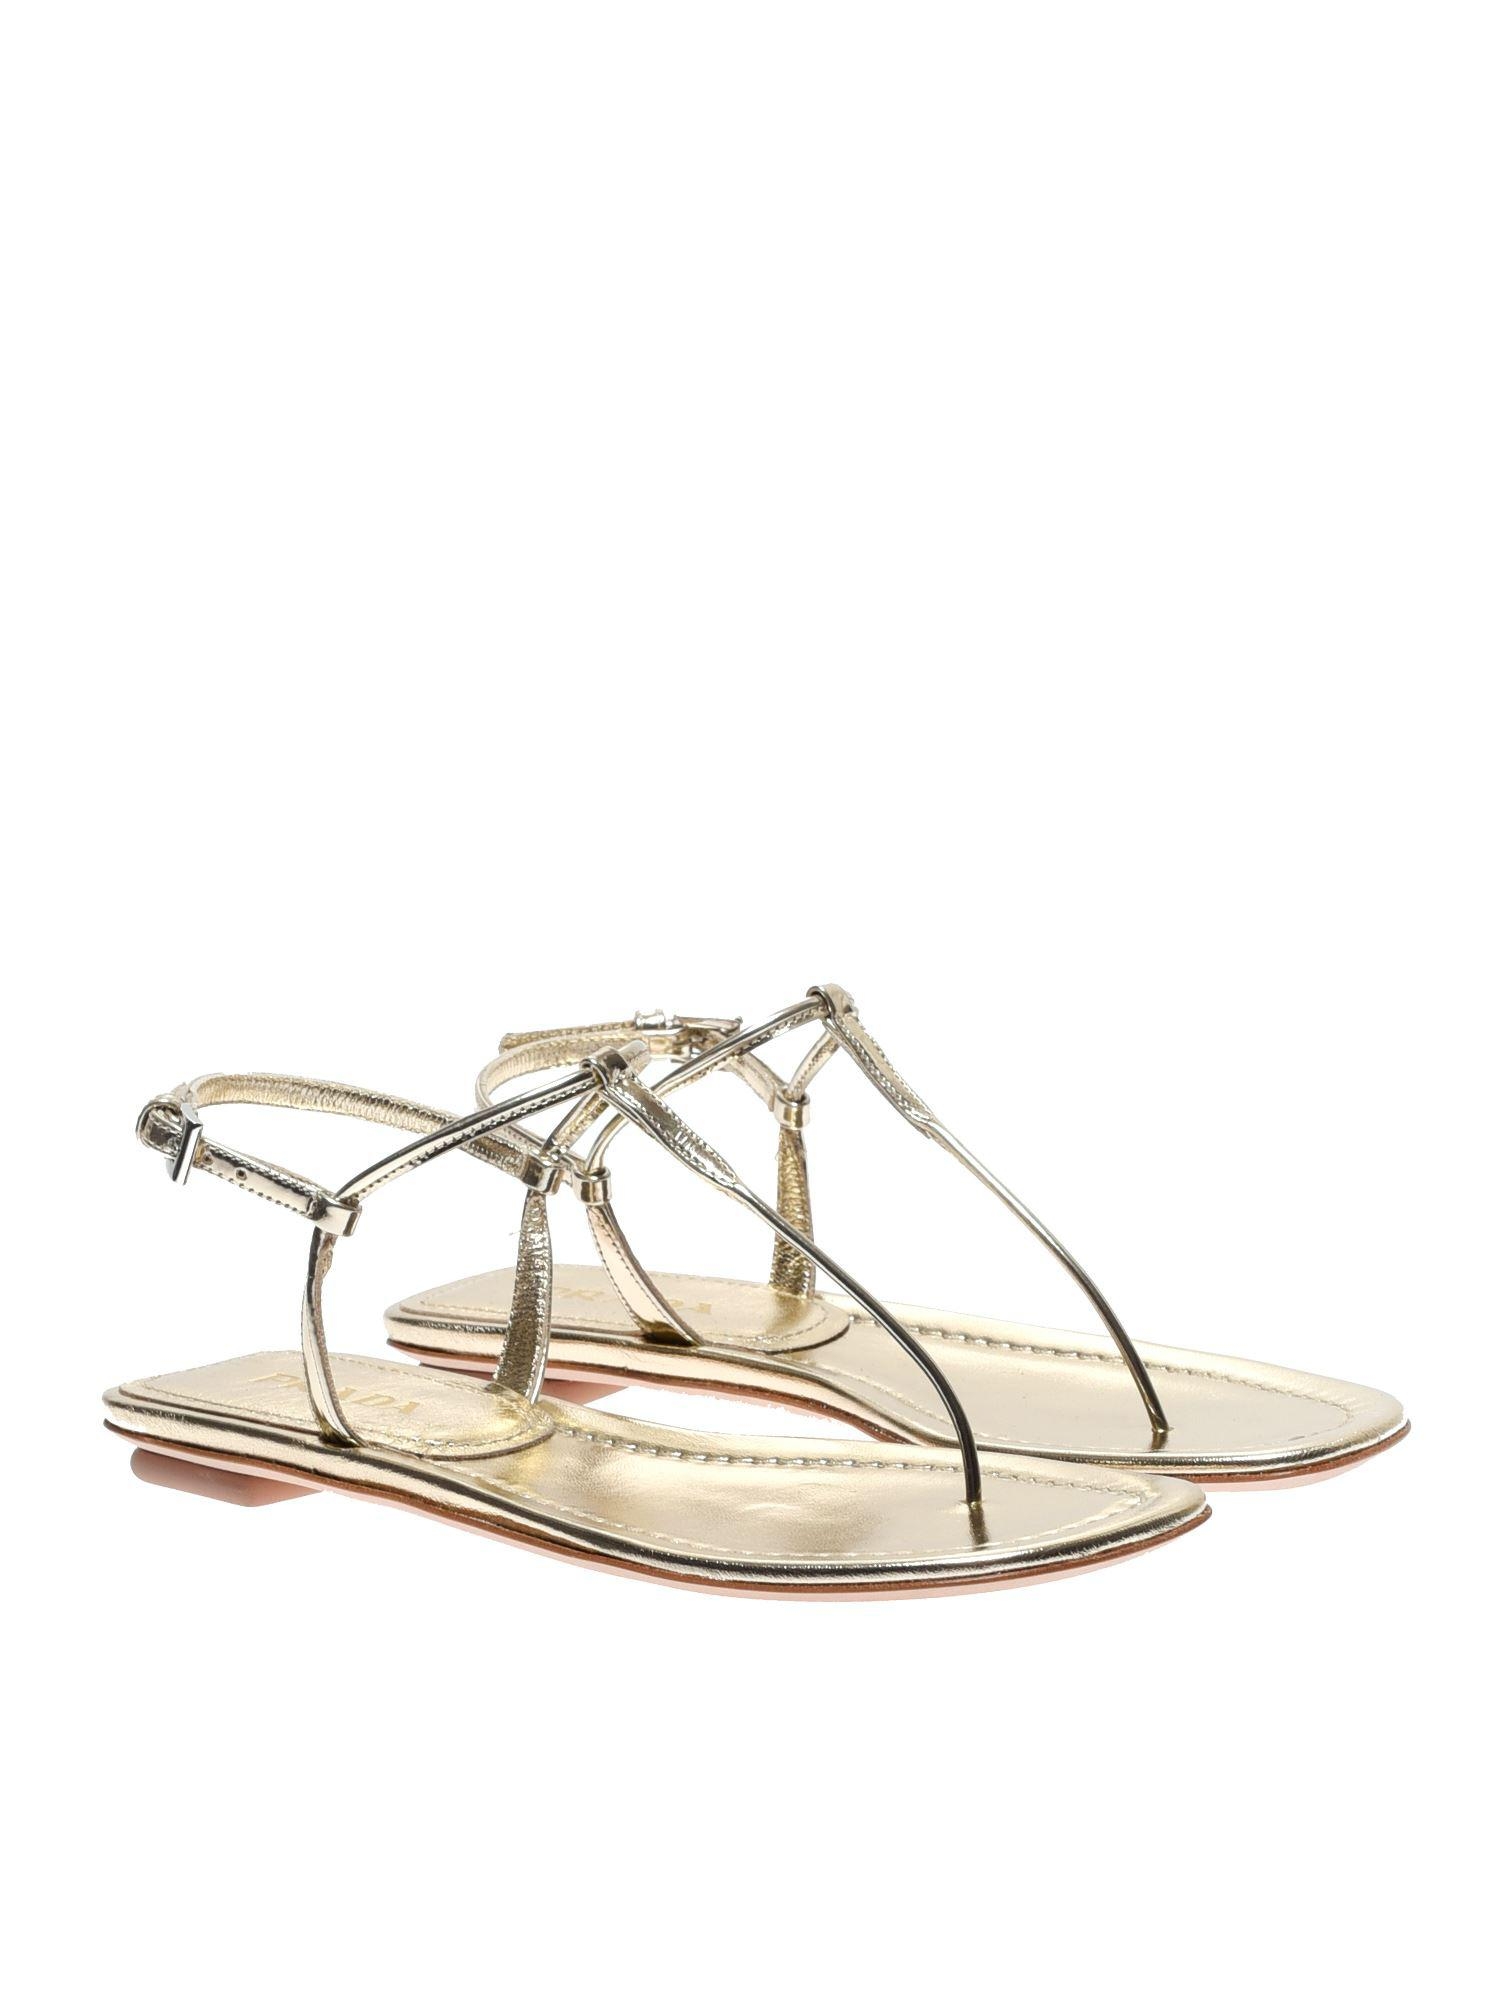 5675f3e8908 Lyst - Prada Laminated Leather Thong Sandals